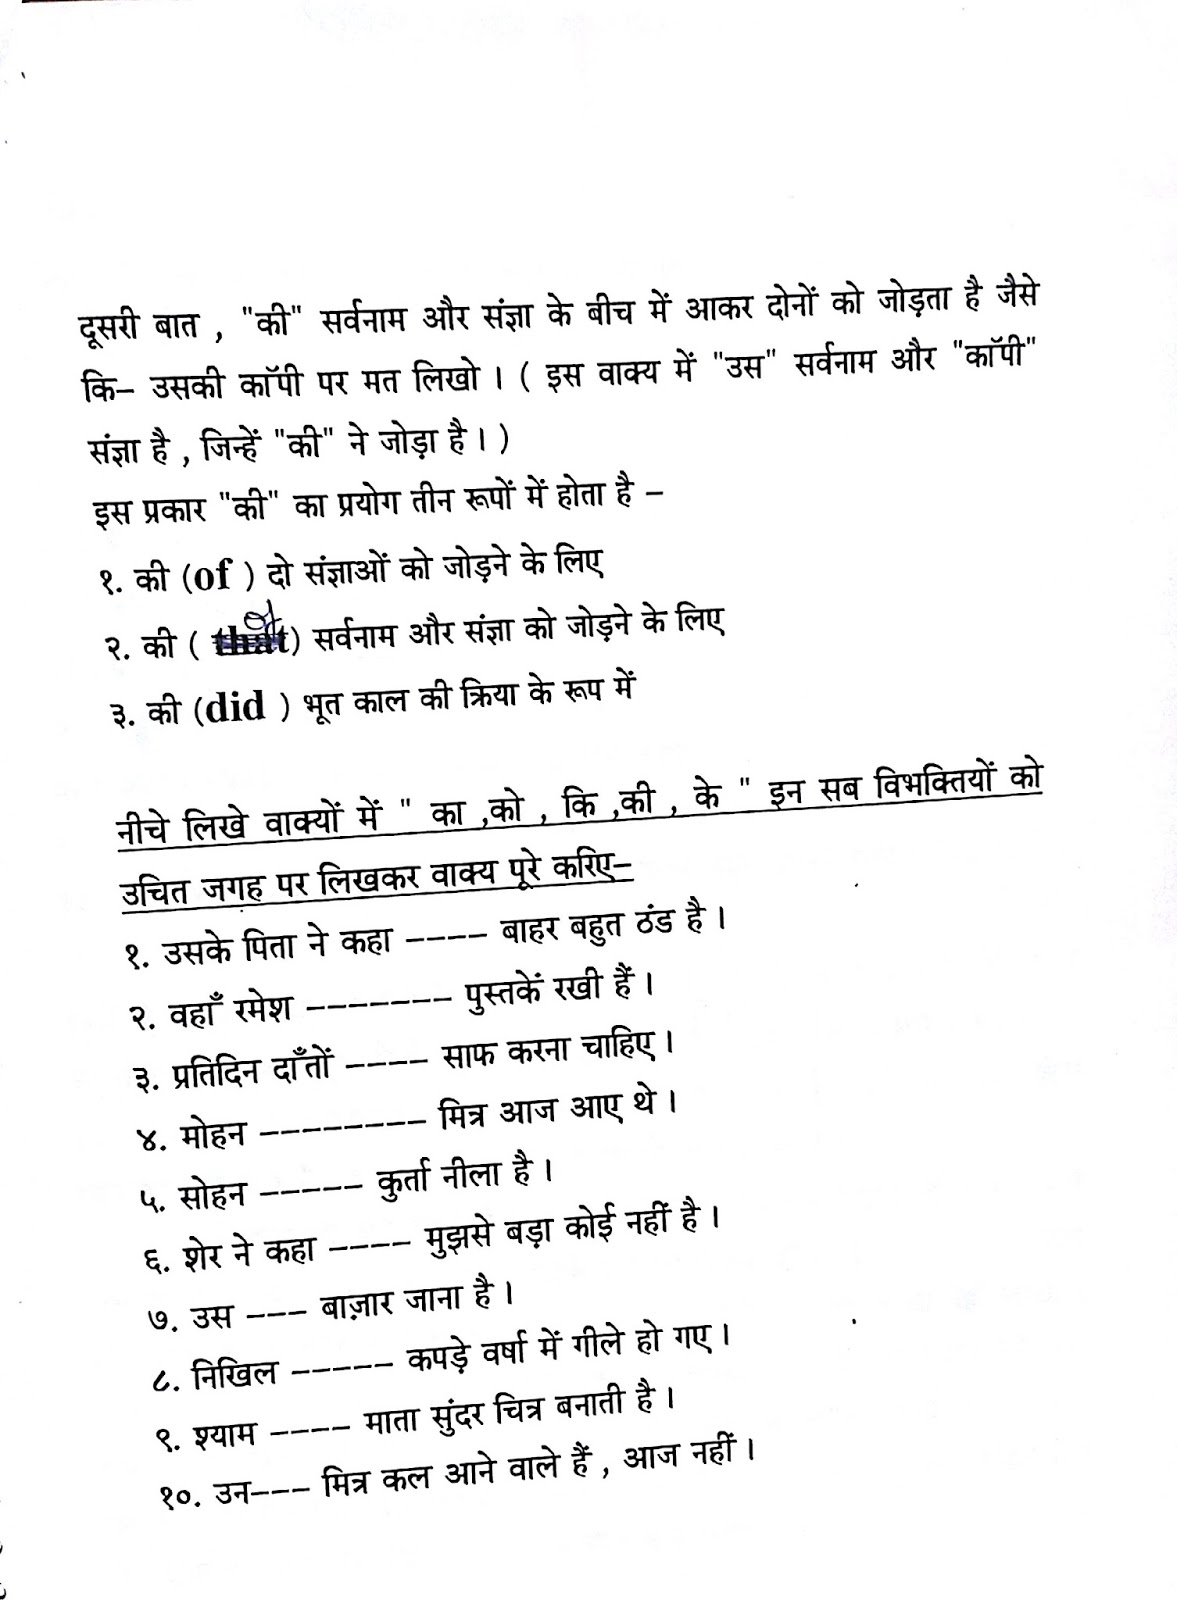 Hindi Grammar Worksheets For Class 7 Icse - worksheets for class 6 ...